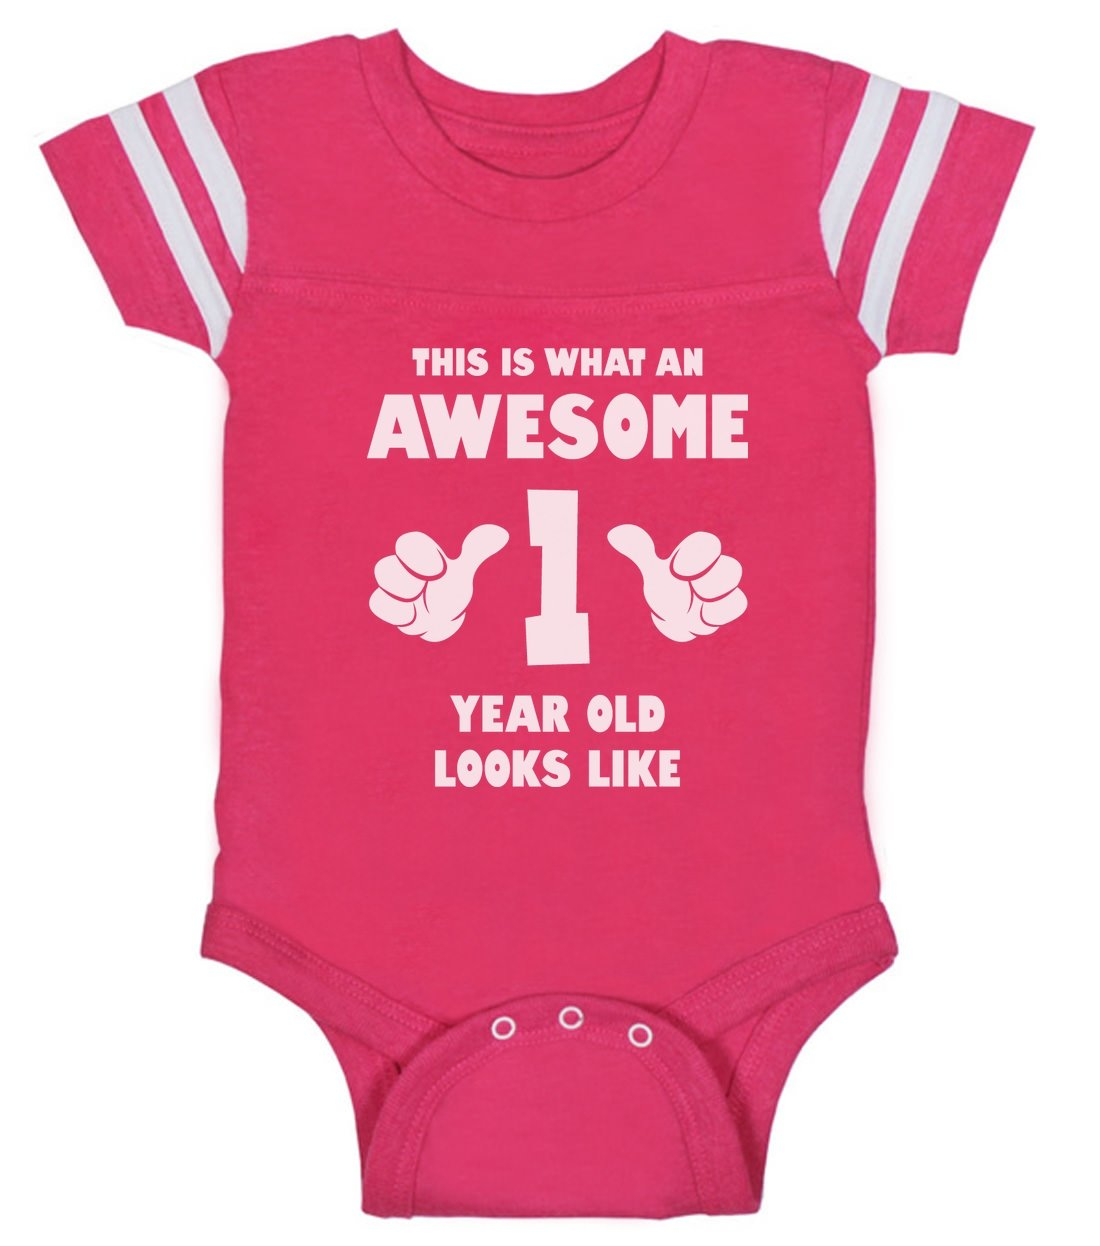 Tstars This Is What an Awesome One Year Old Looks Like Funny Baby Jersey Bodysuit 18M Wow Pink